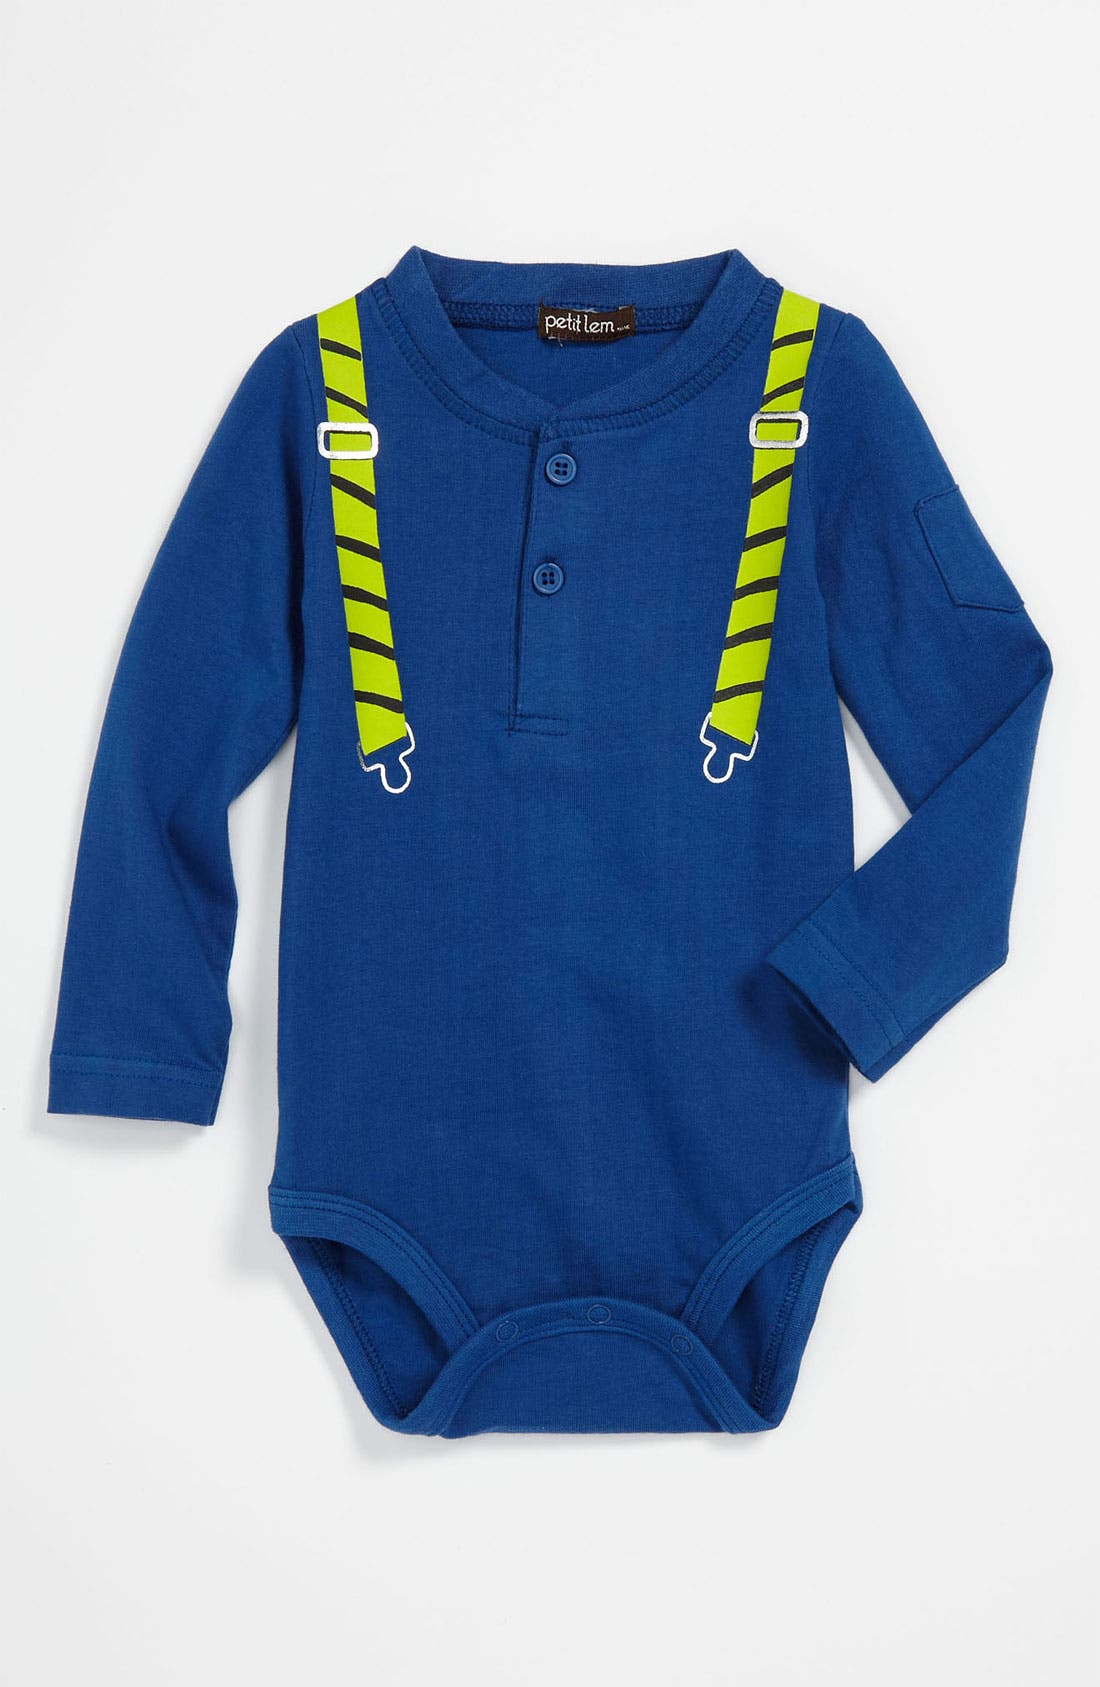 Main Image - Petit Lem Bodysuit (Infant)